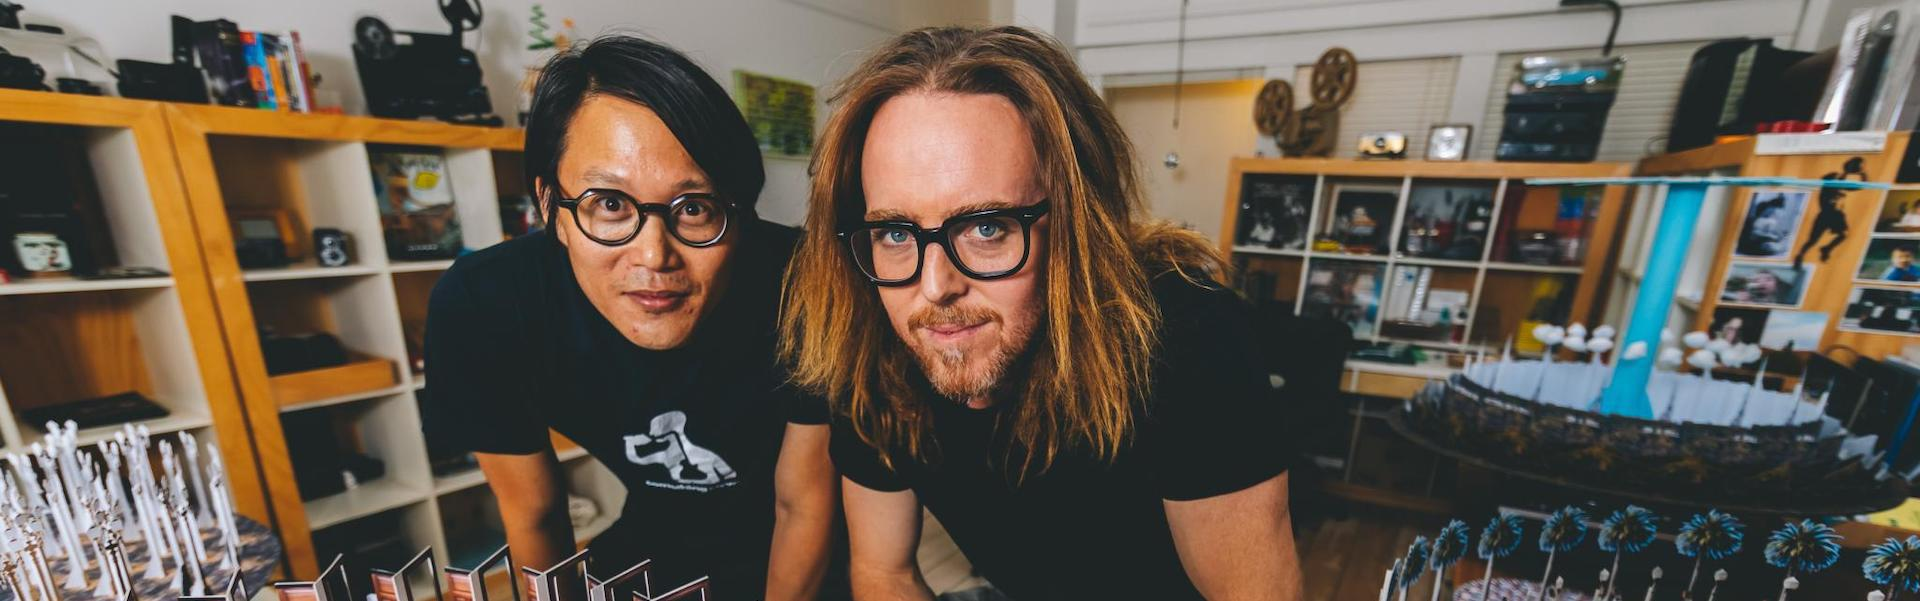 Tim Minchin Leaving LA